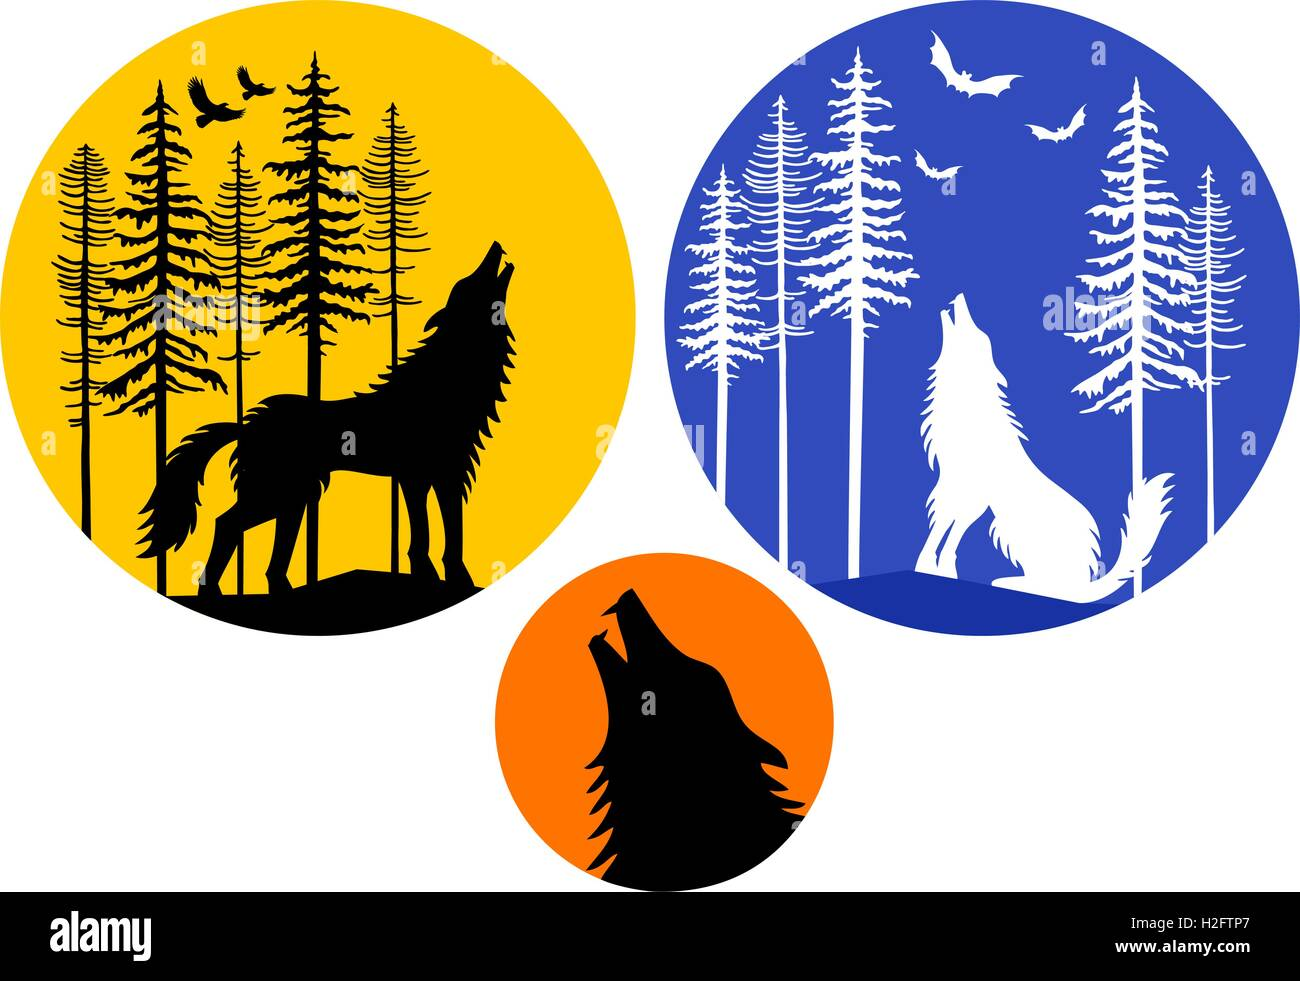 Howling wolf with moon, fir trees and flying birds, set of vector design elements - Stock Image